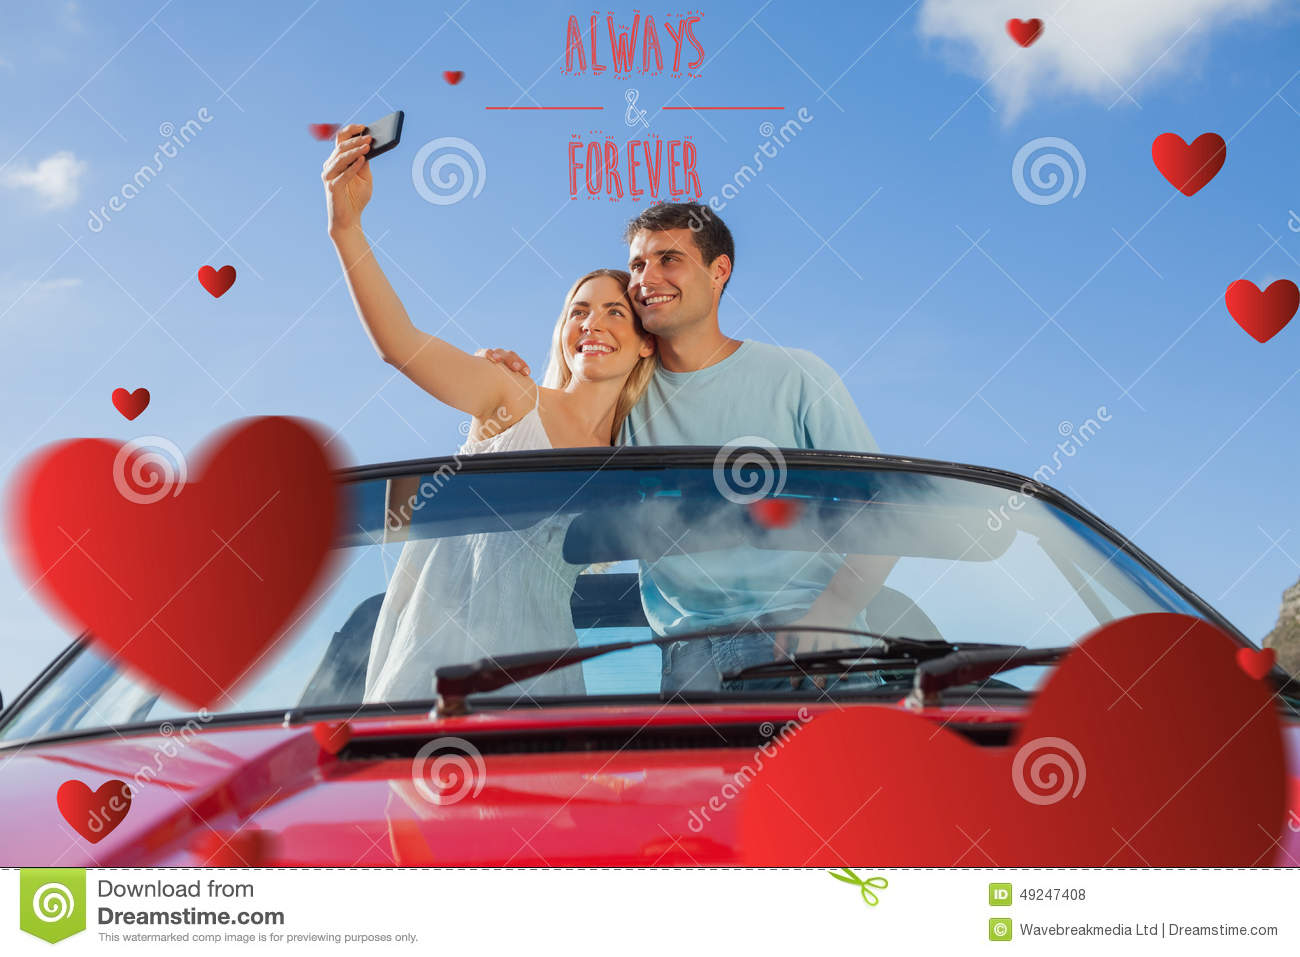 Composite image of cheerful couple standing in red cabriolet taking picture